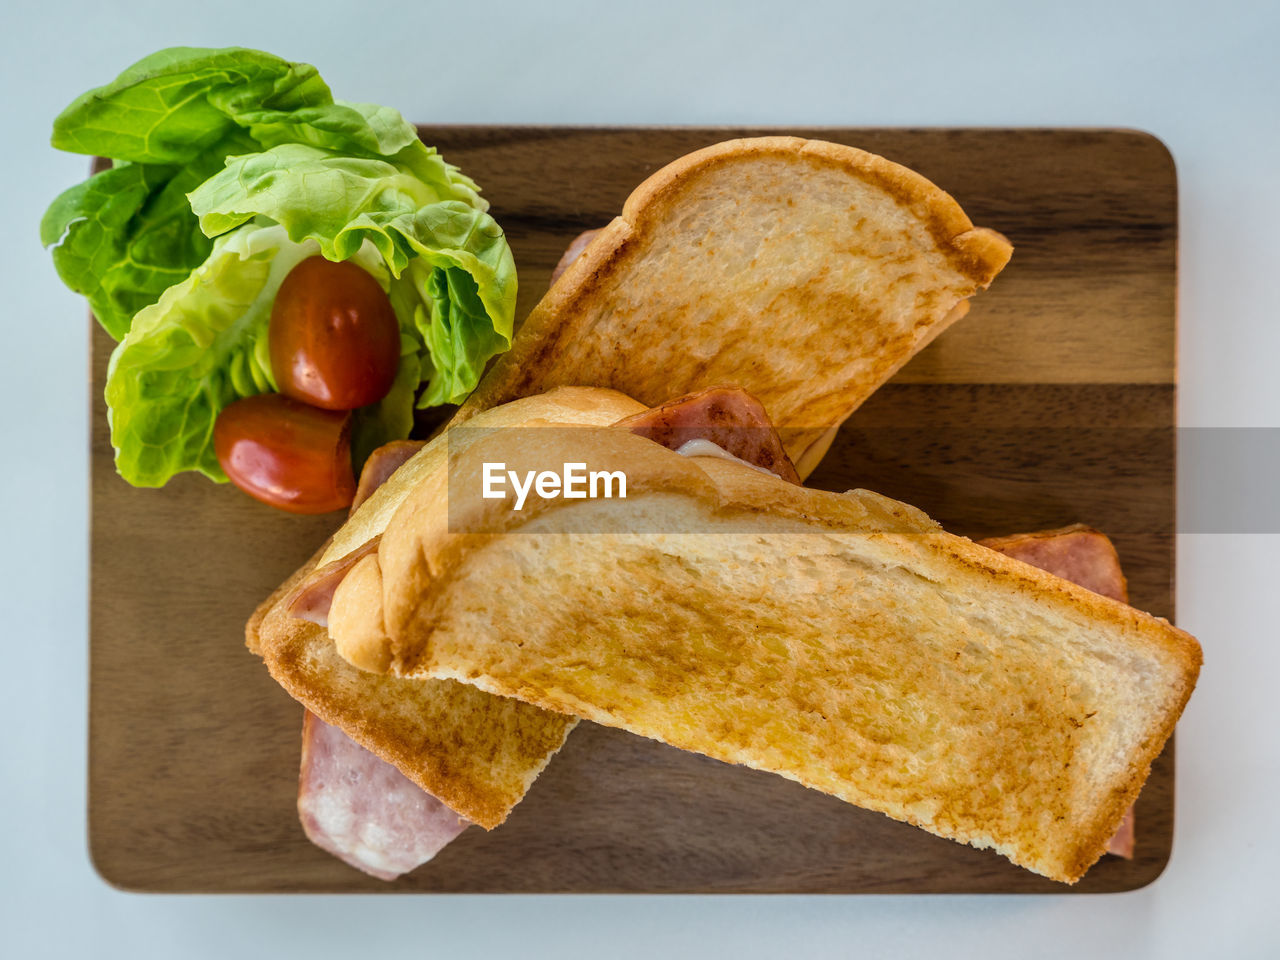 food, food and drink, bread, freshness, vegetable, healthy eating, indoors, ready-to-eat, sandwich, lettuce, meal, no people, close-up, wellbeing, still life, snack, serving size, plate, toasted bread, directly above, breakfast, vegetarian food